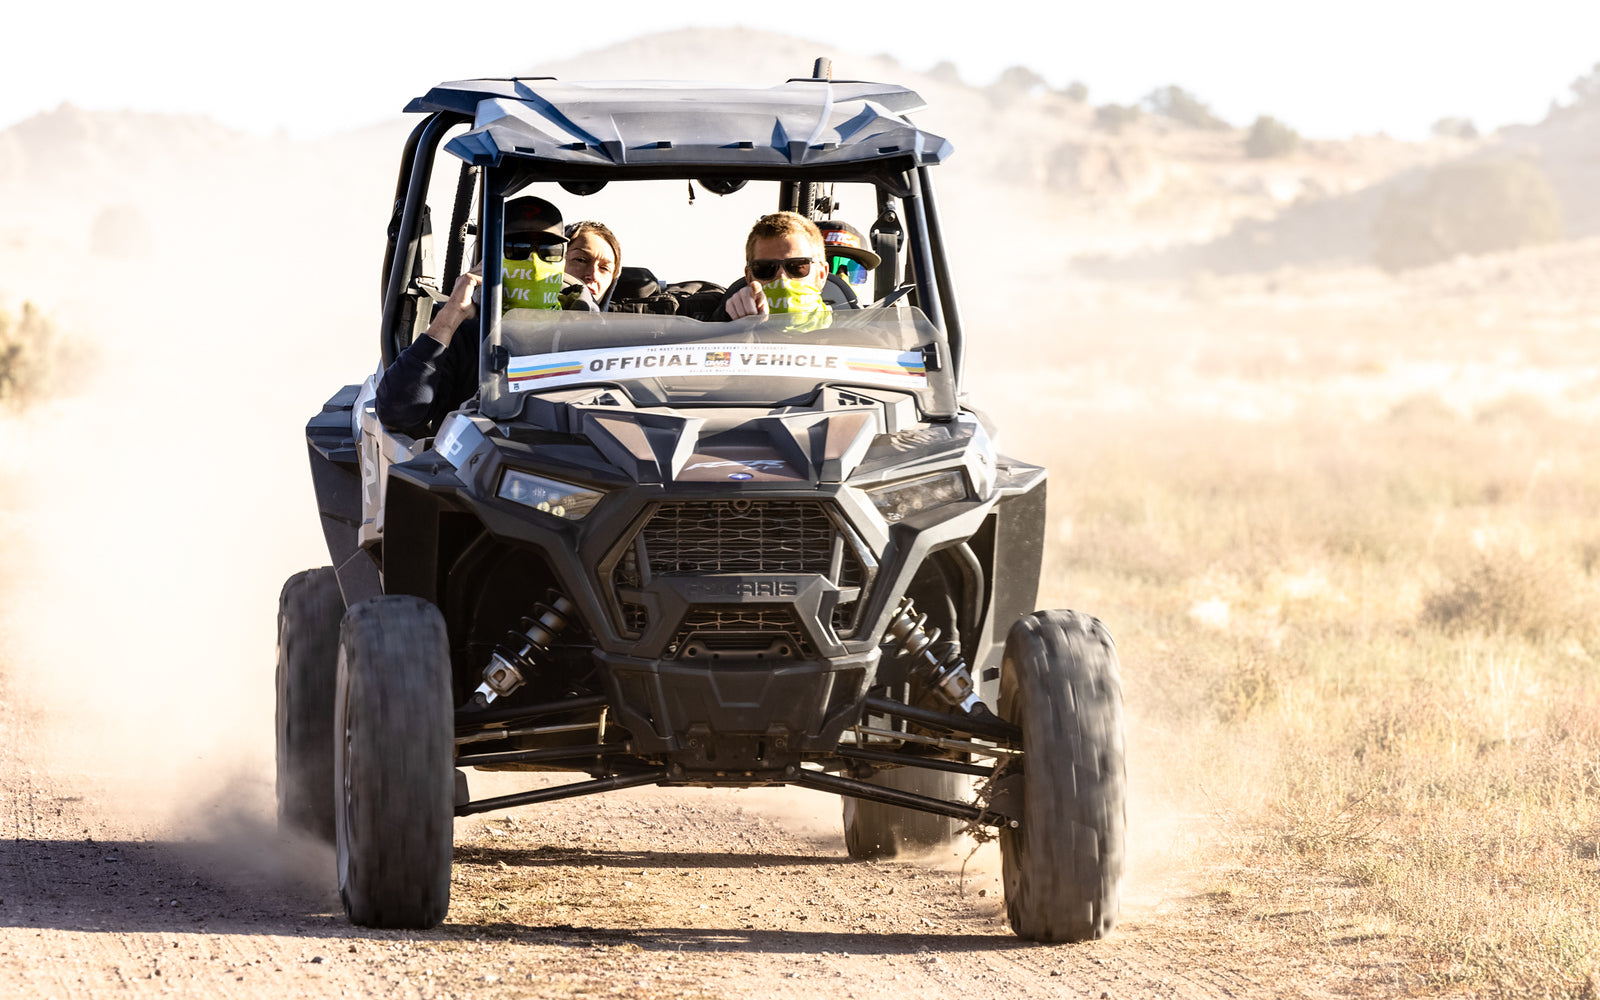 official dune buggy